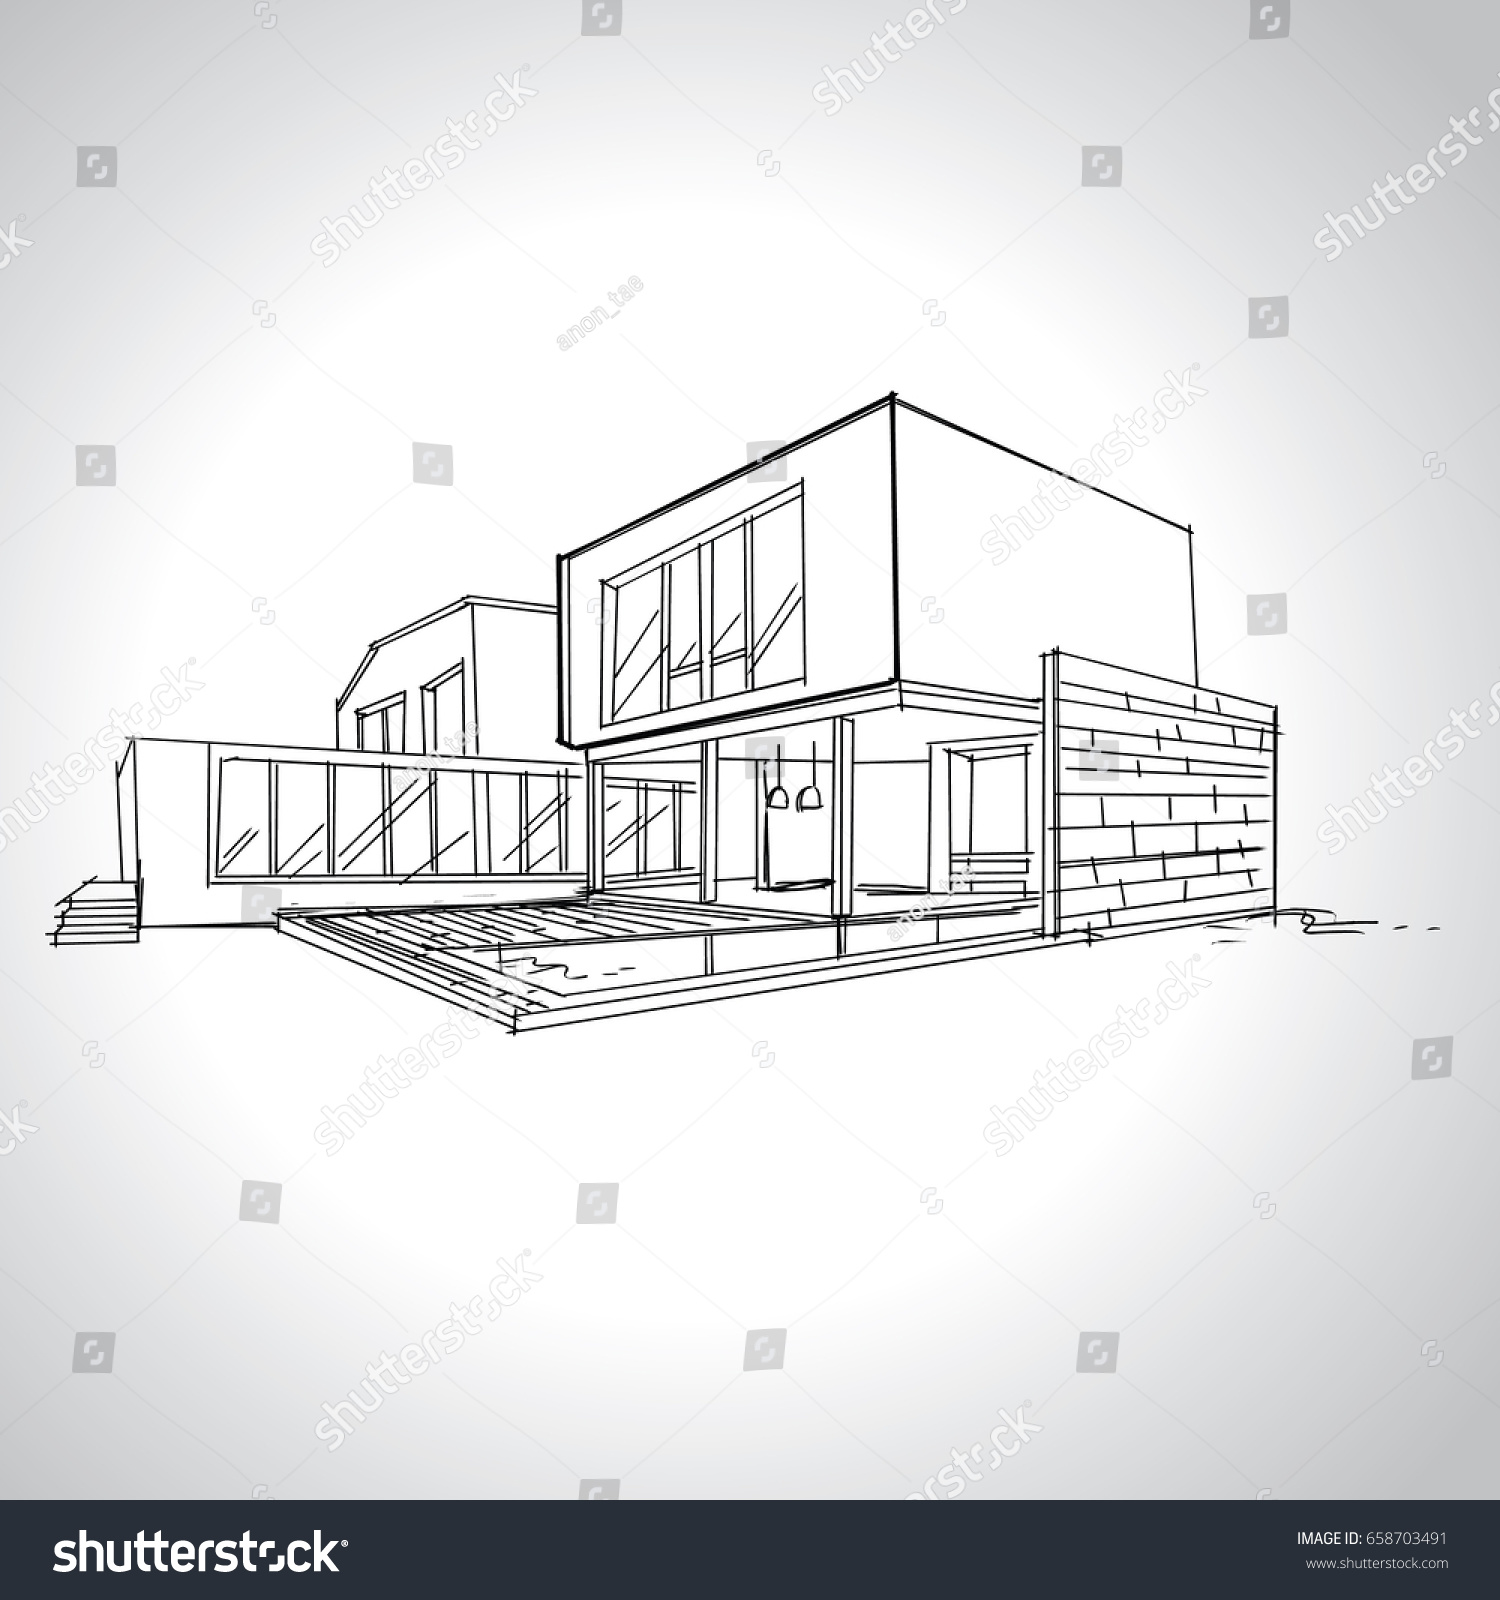 Image of modern home architecture sketches daksh modern house drawings contemporary home architecture sketches architectural